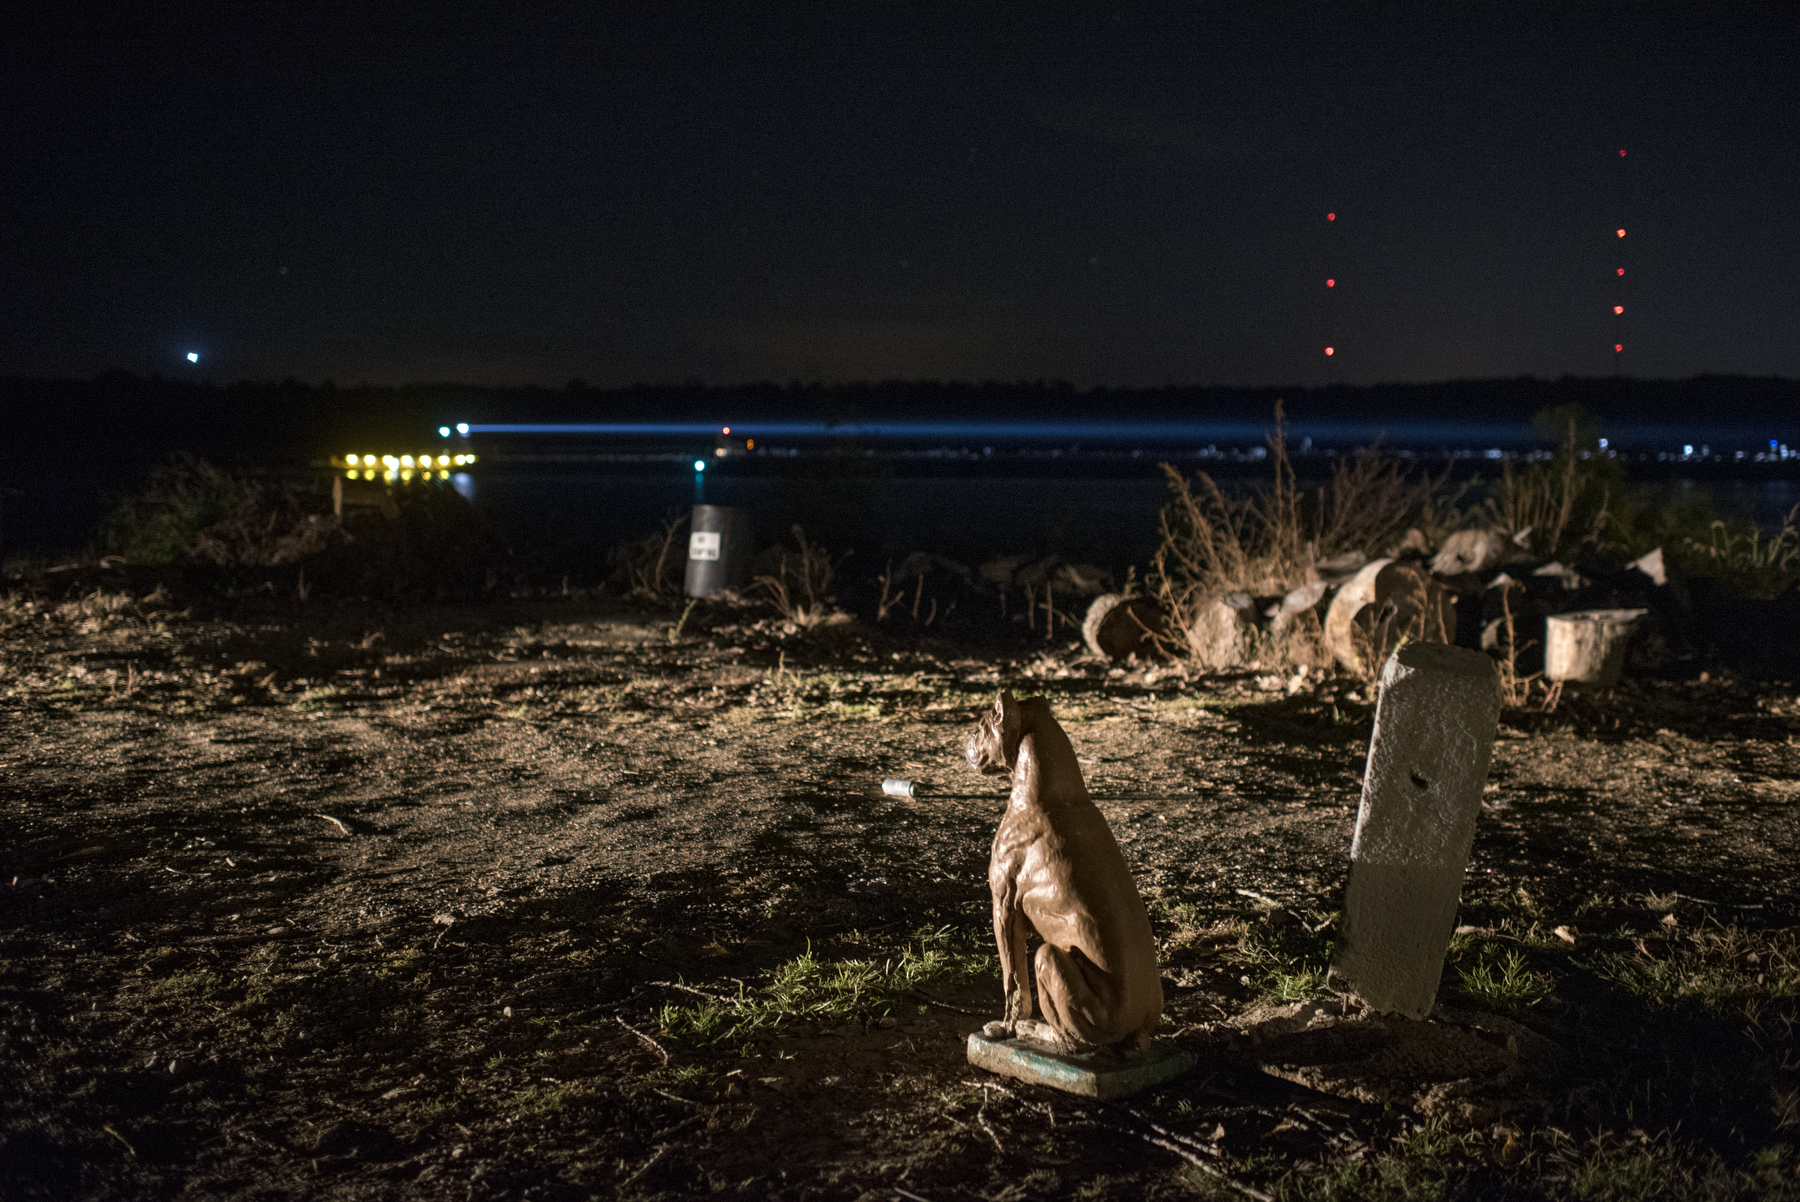 Decorations are a part of the riverbank culture. A plastic dog guards the dirt road along the camps while a barge passes in the dark in Dade, Ky. on Oct. 22, 2017.